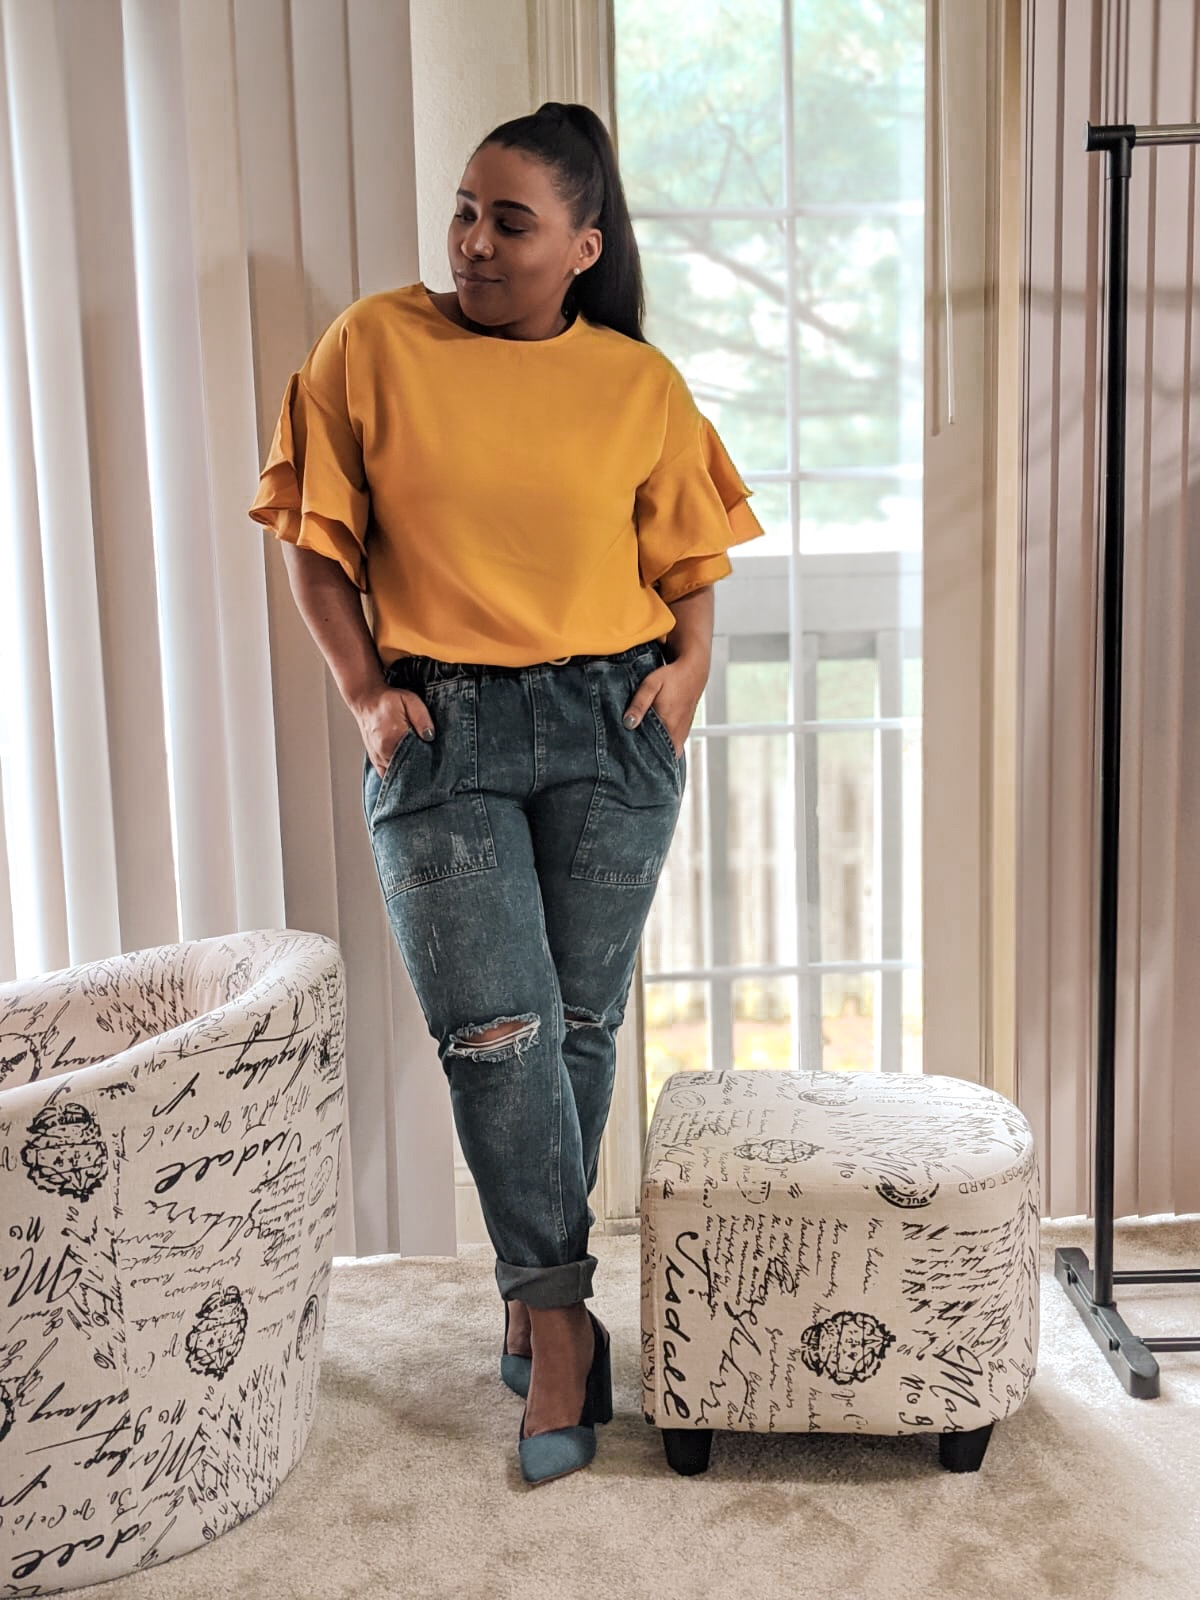 Lookbook store, stylish at home, shoedazzle shoes, denim mules, spring shoes, ruffle sleeves top, spring outfit ideas, summer outfit ideas, how to style denim